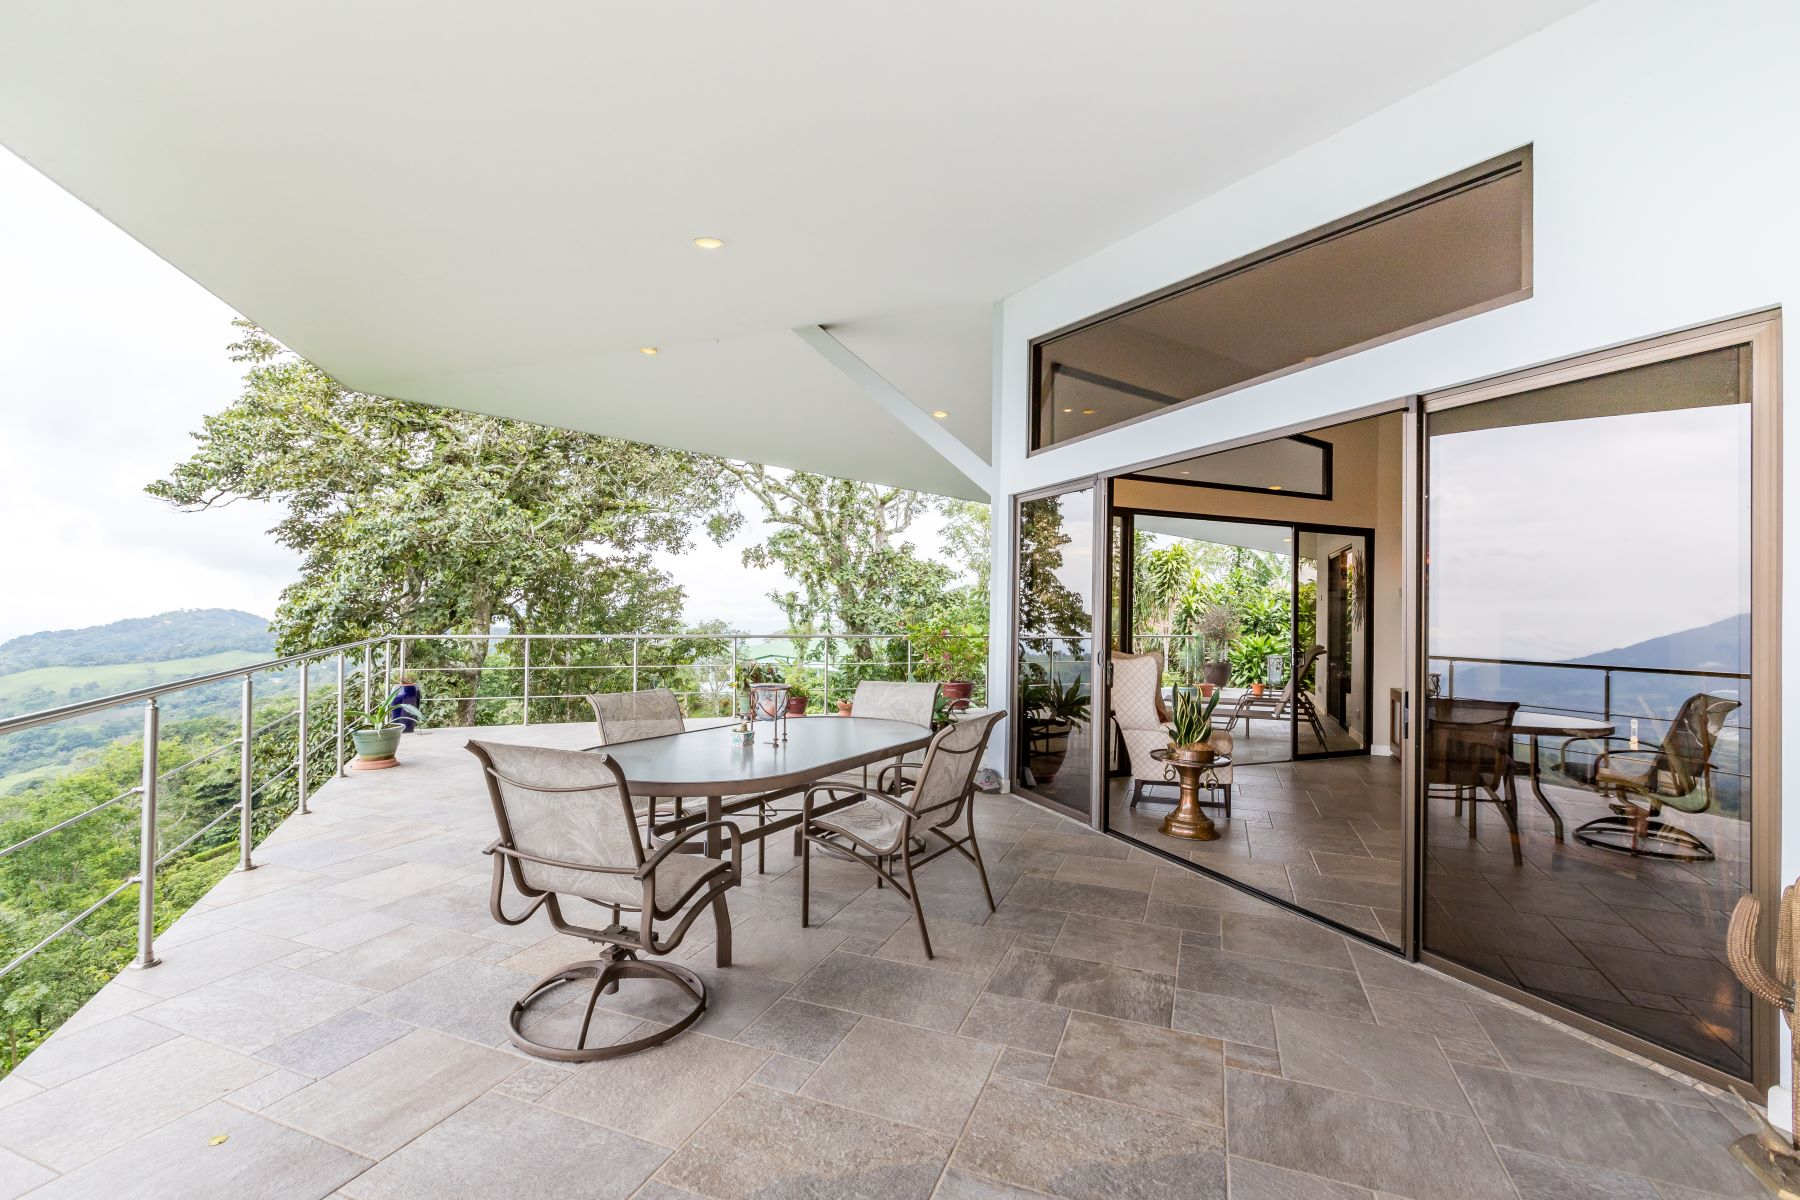 Single Family Homes for Sale at Las Colinas, Puriscal Puriscal, San Jose Costa Rica